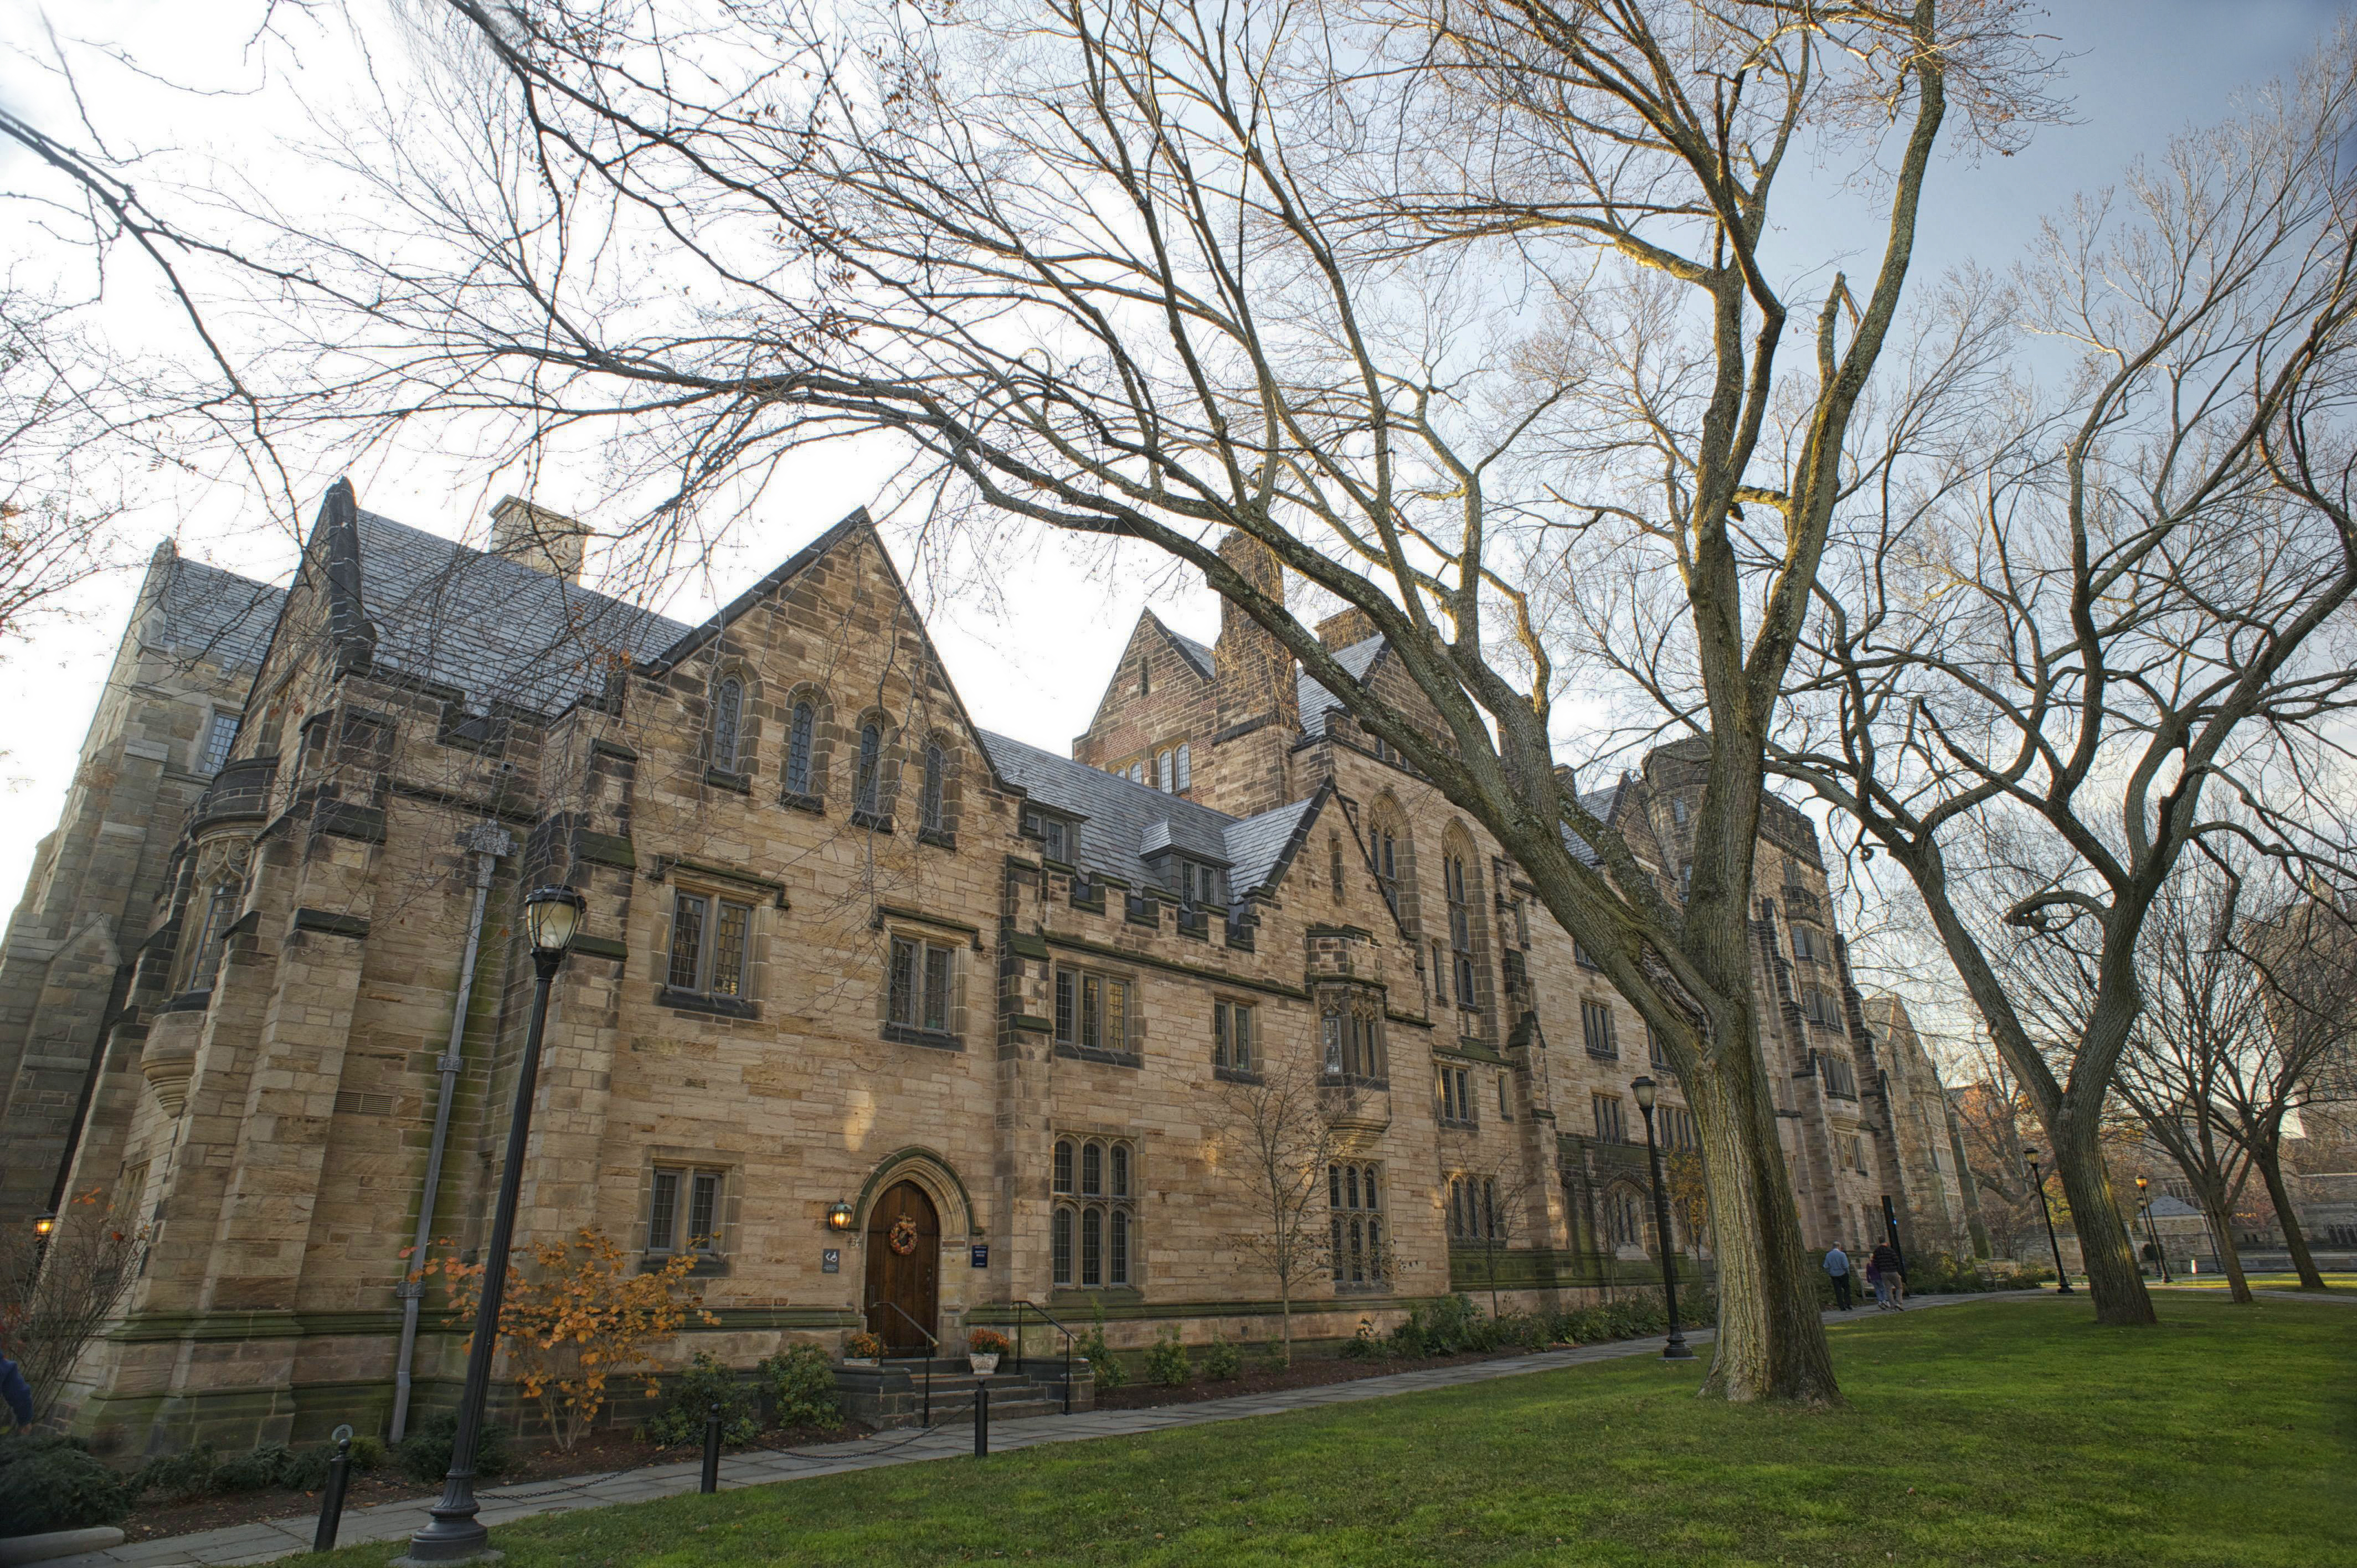 Calhoun College part of Yale University built in 1933, in collegiate gothic style architecture.